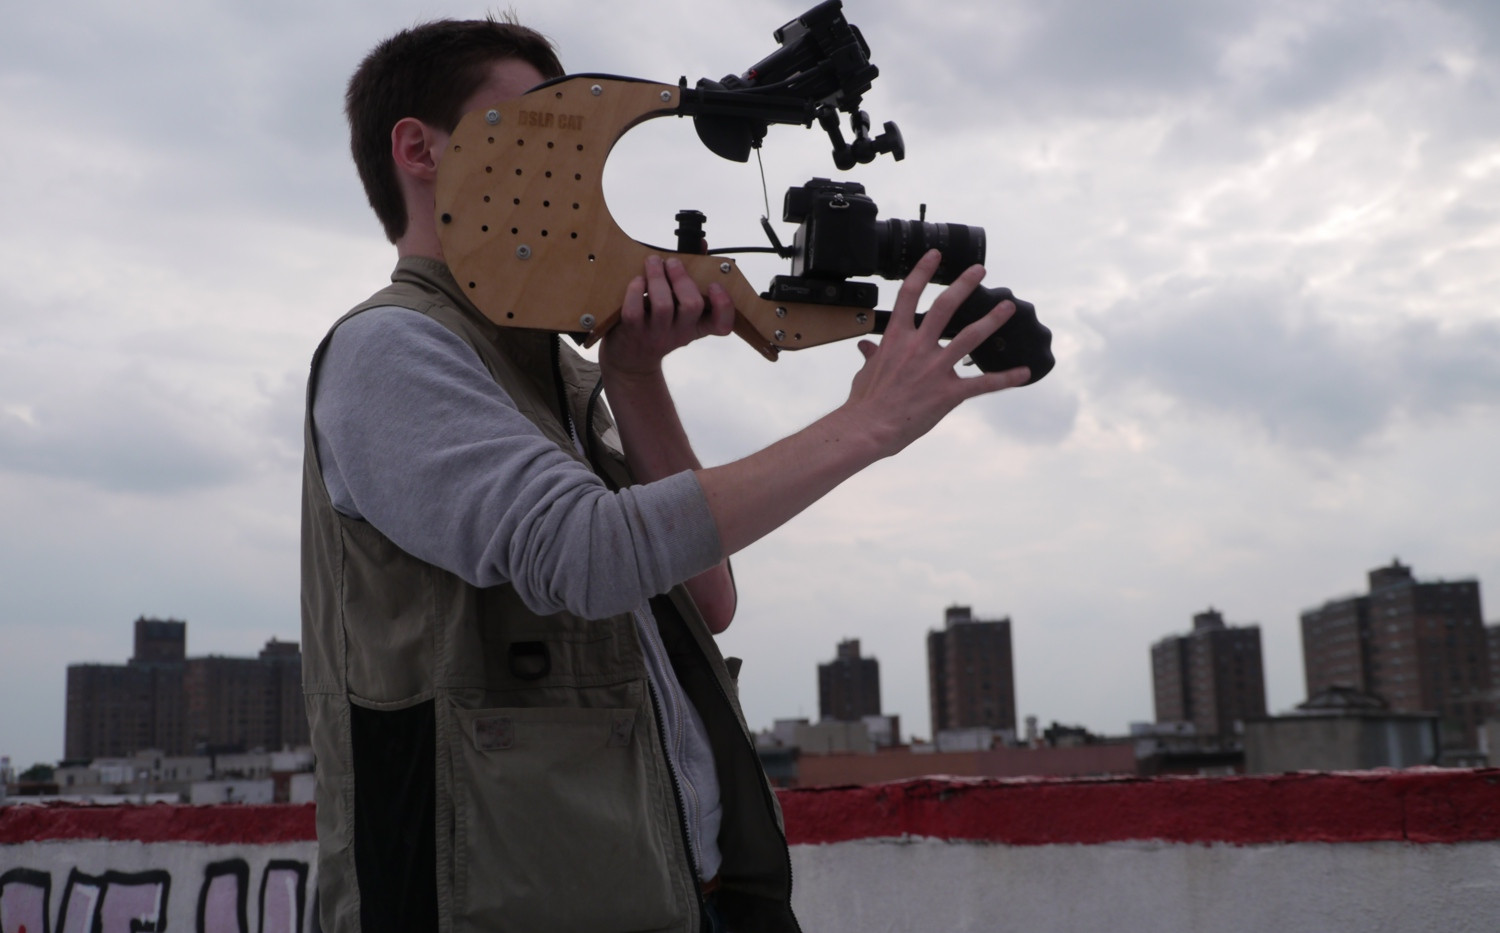 Peter_Haas_DSLR_Cat_Shoulder_Rig_2.jpg